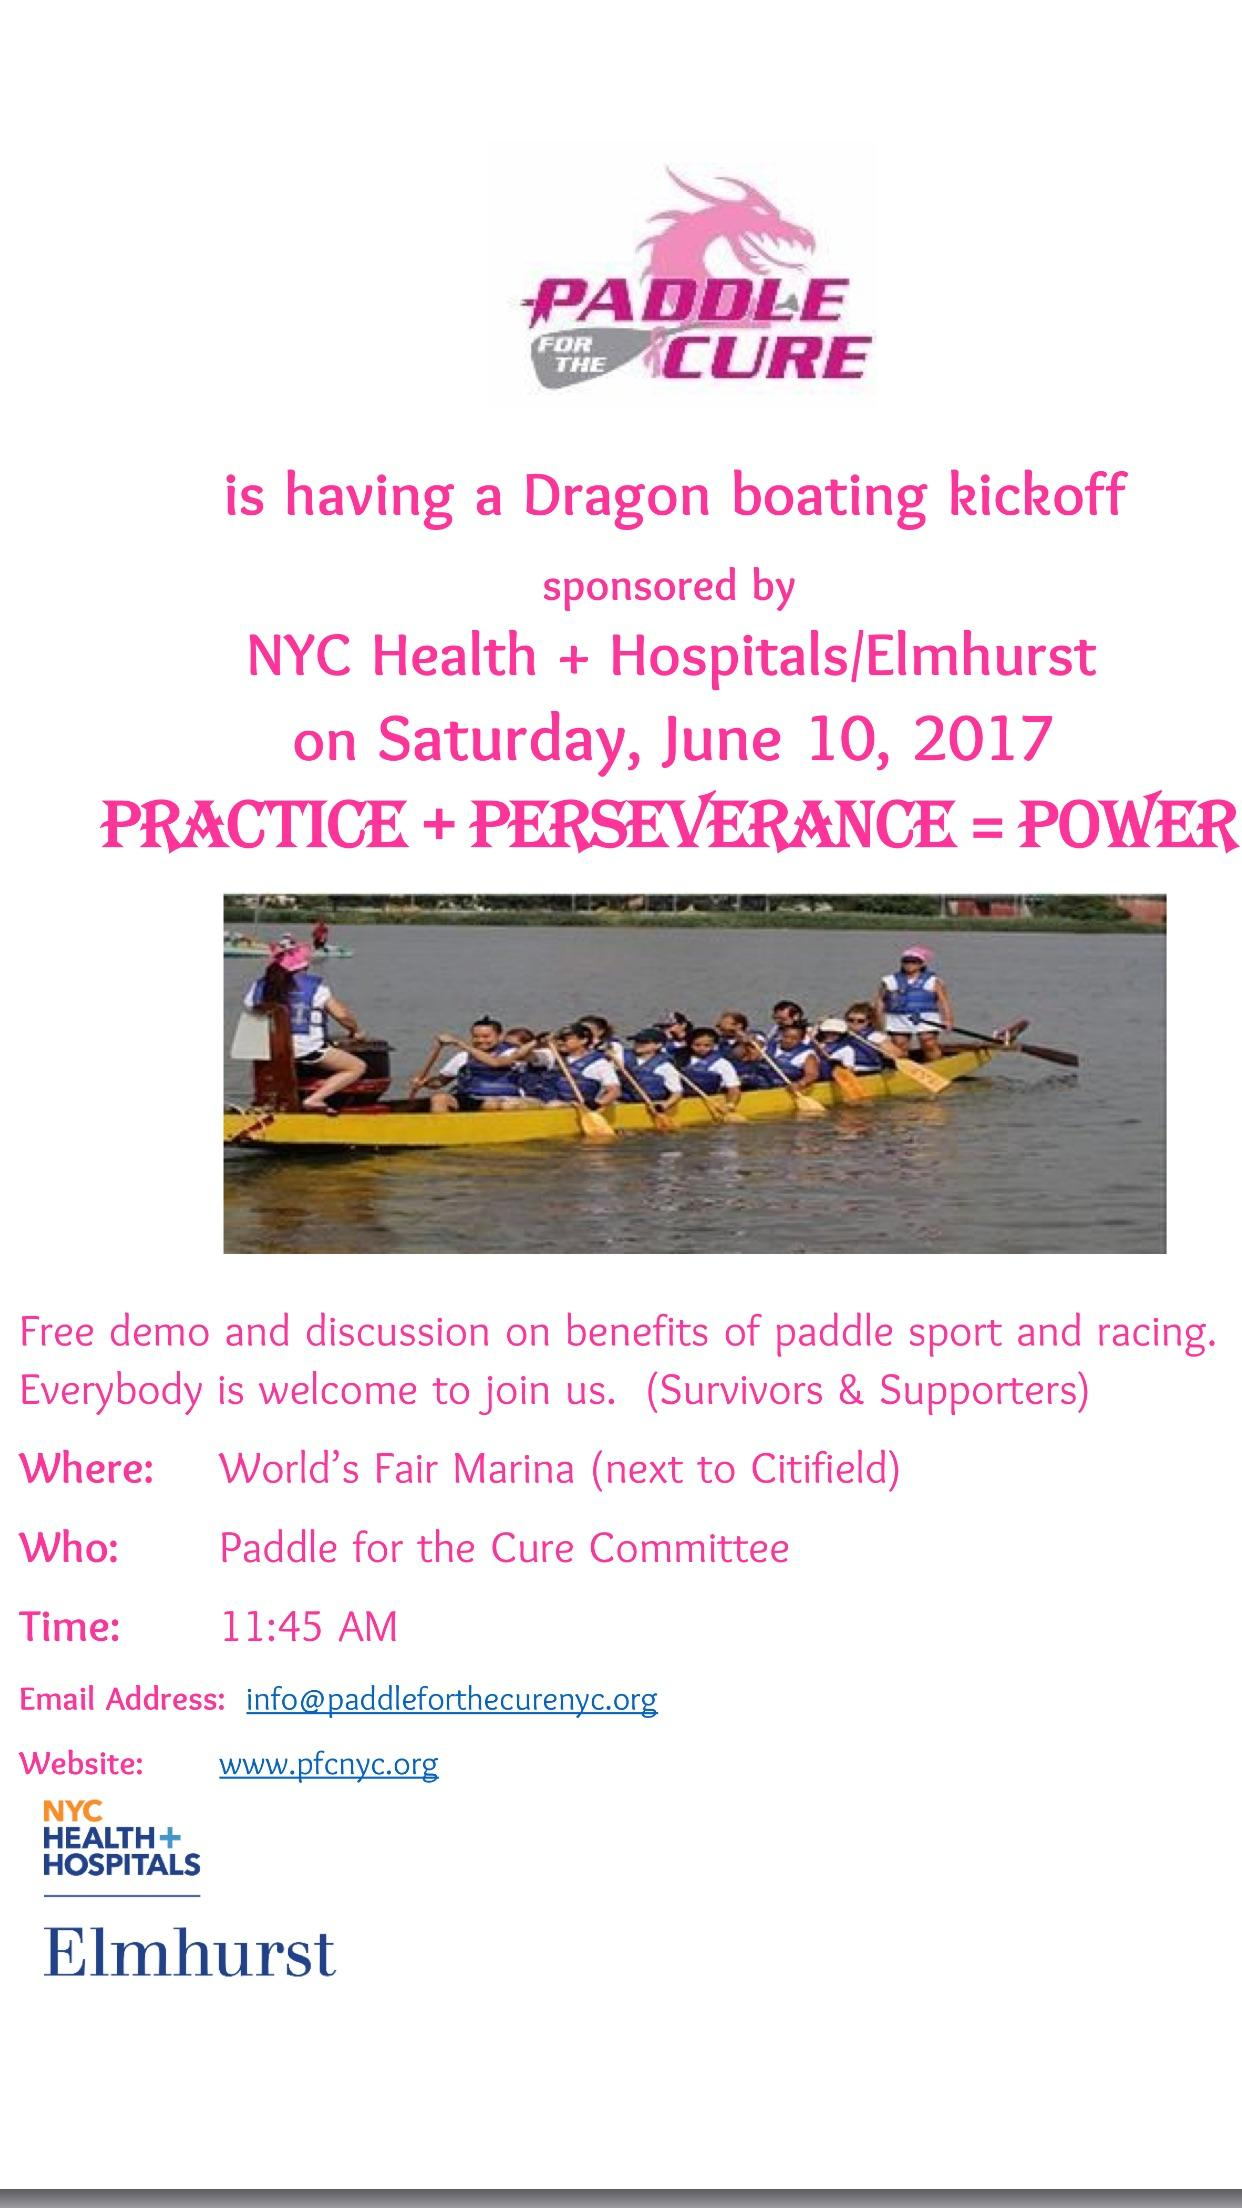 Paddle for the Cure NYC Dragon Boating Kickof